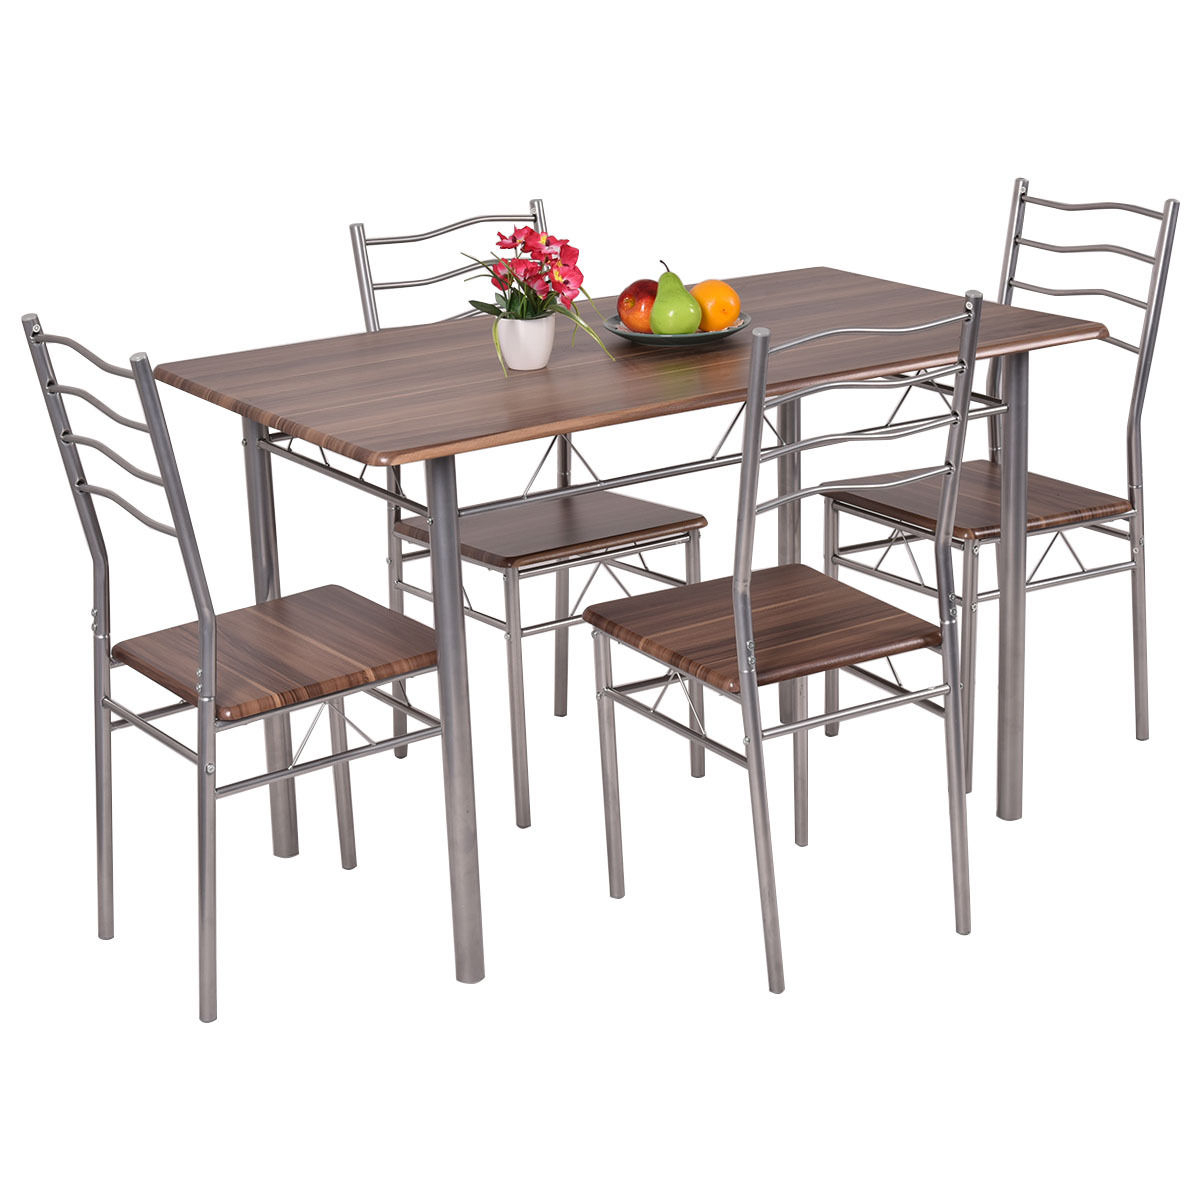 Tms Mason 5 Piece Cross Back Dining Set, Multiple Colors – Walmart Intended For Trendy Cargo 5 Piece Dining Sets (#15 of 20)